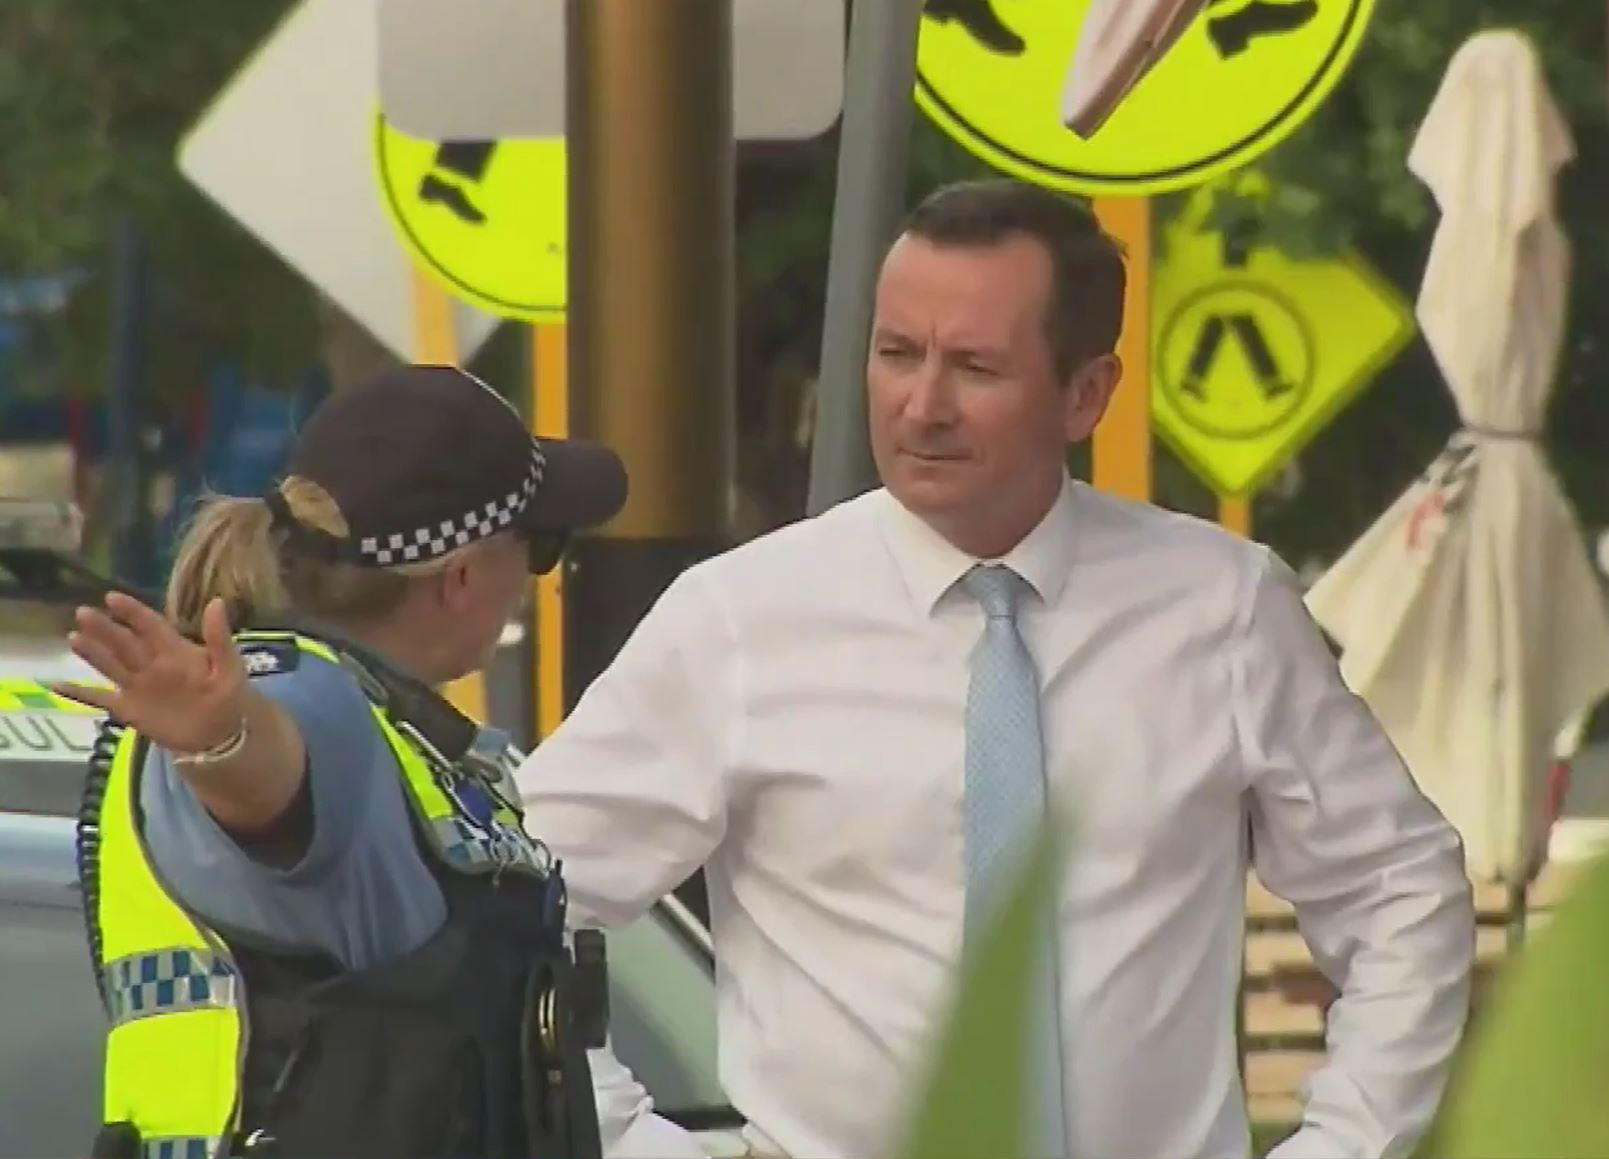 Article image for Man arrested after suspicious package hurled at Premier Mark McGowan's office